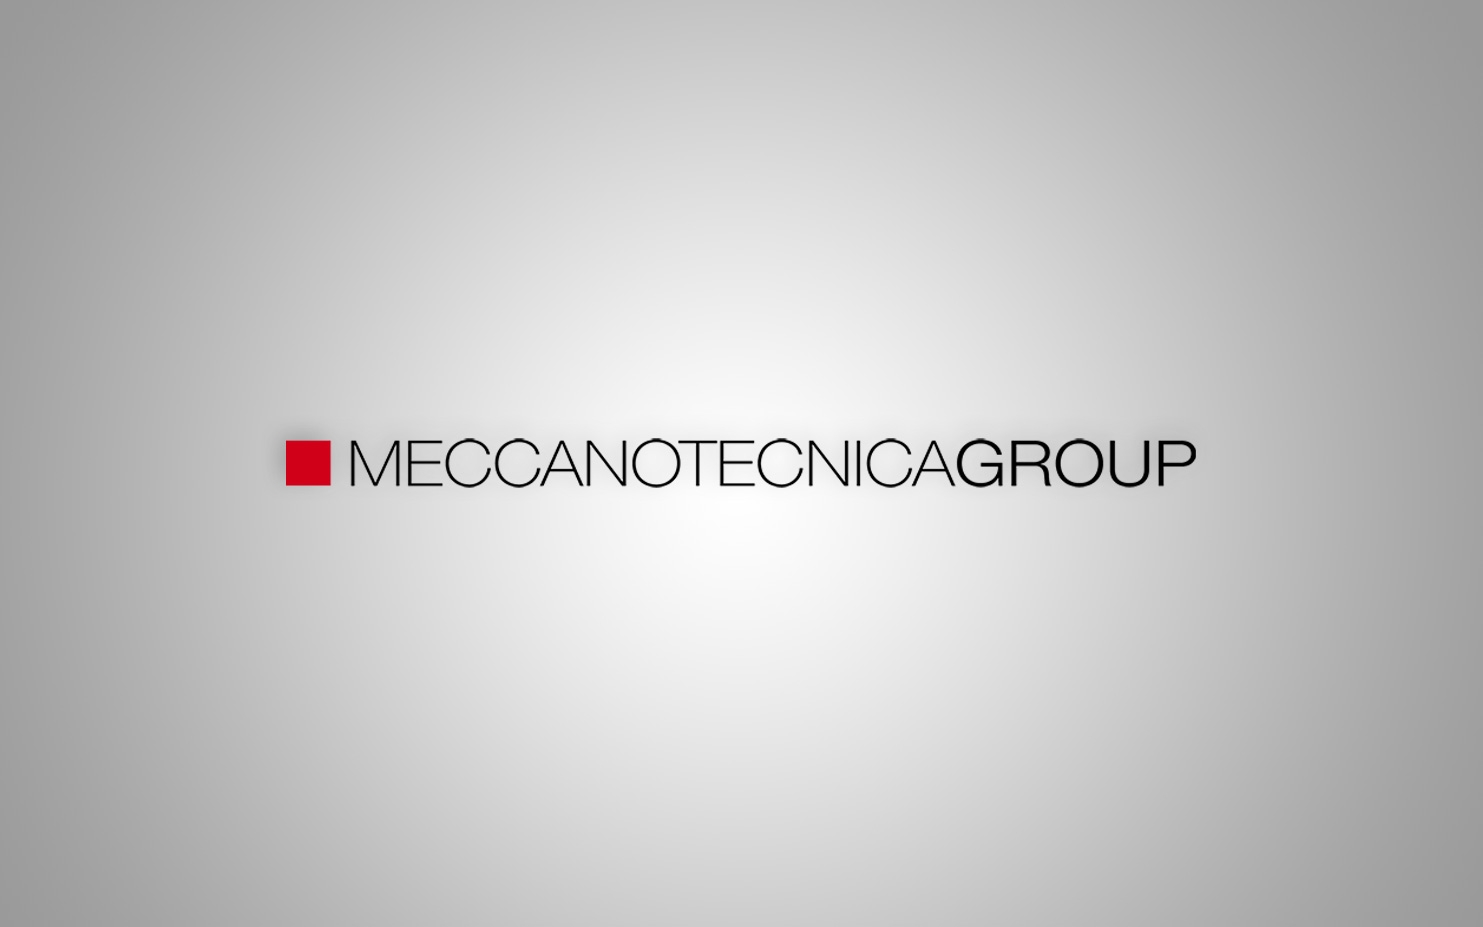 Meccanotecnica to resume all activities in Italy as of May 4th